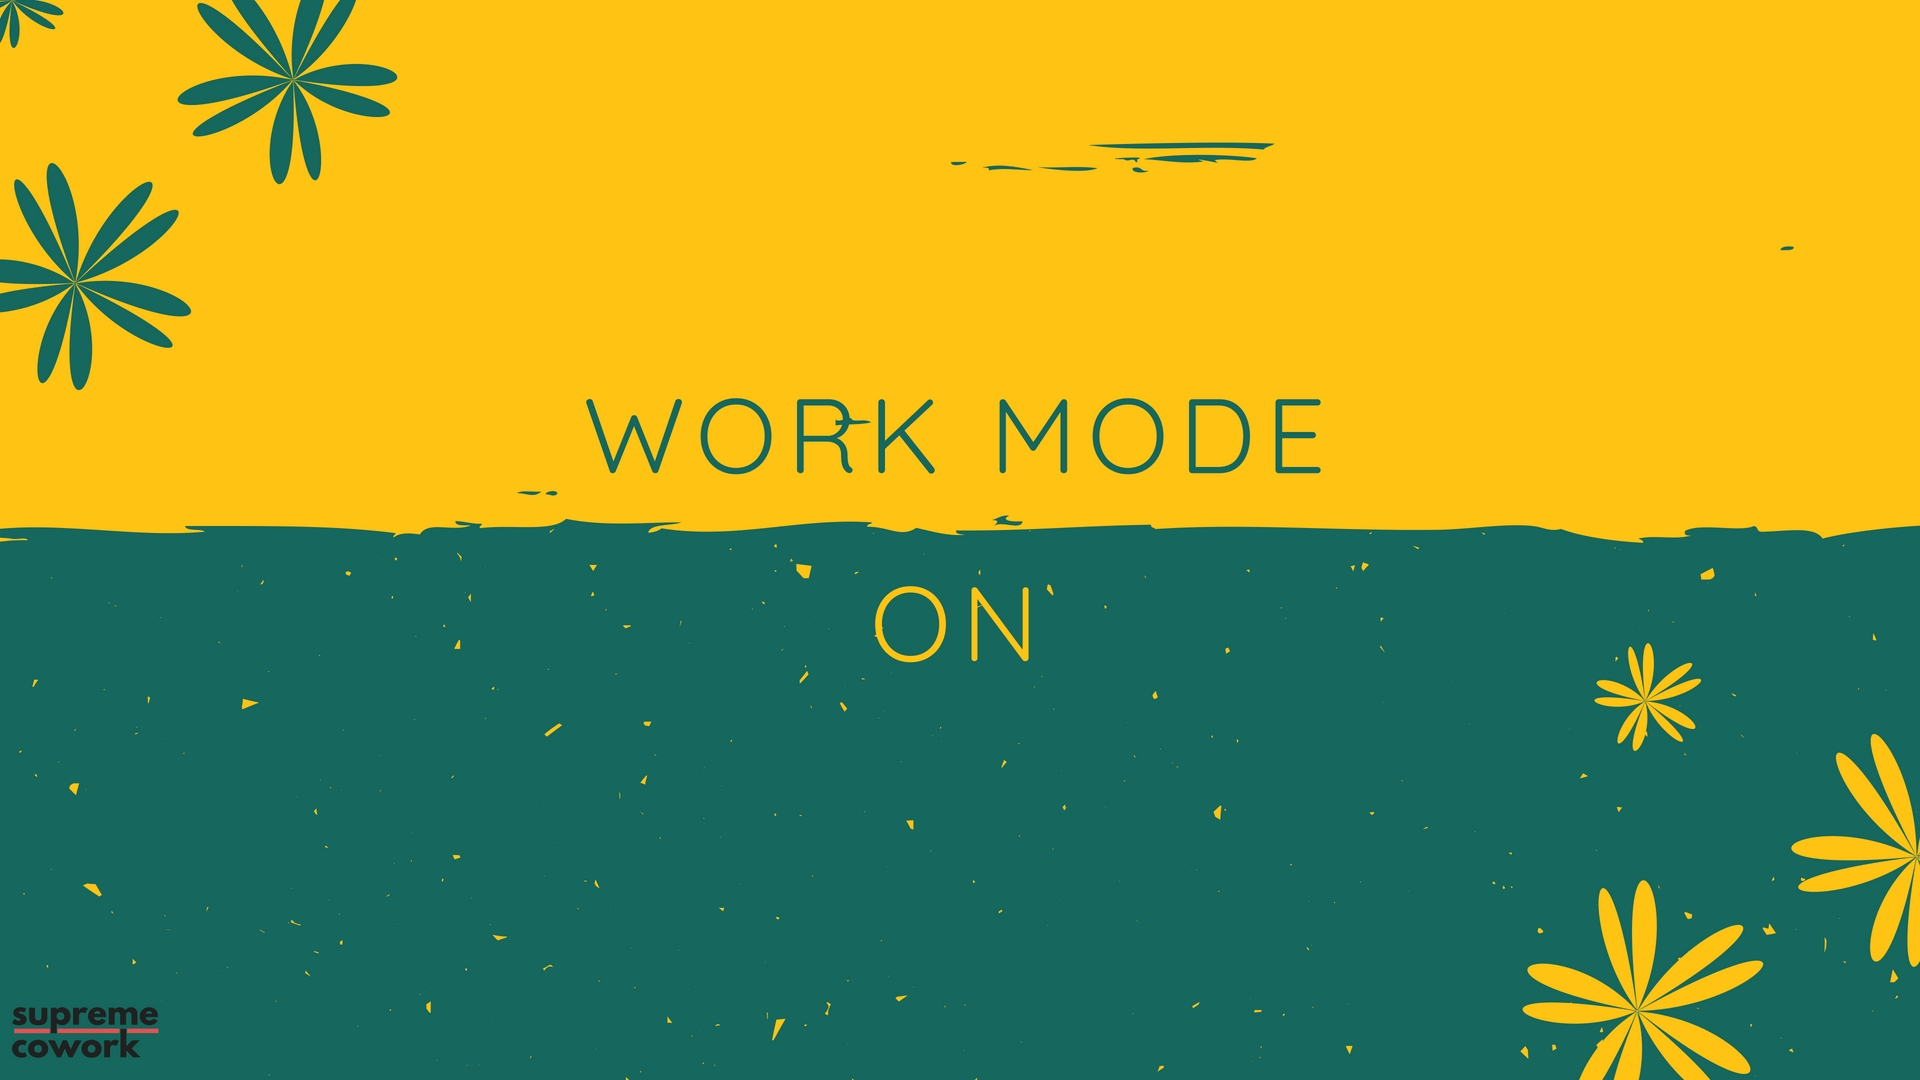 Work Mode On HD Desktop Wallpaper Background download 1920x1080